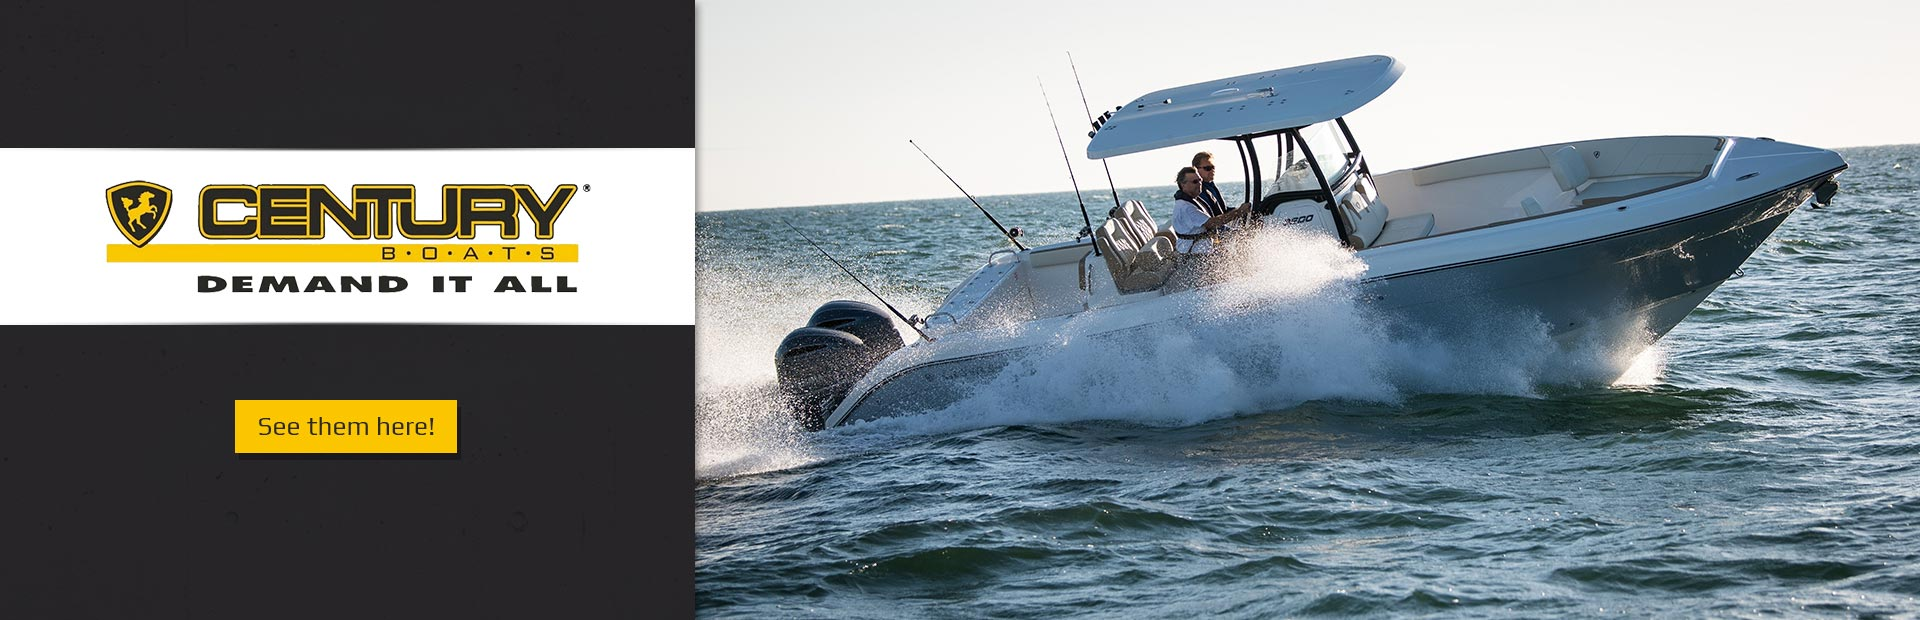 Century Boats: See them here!